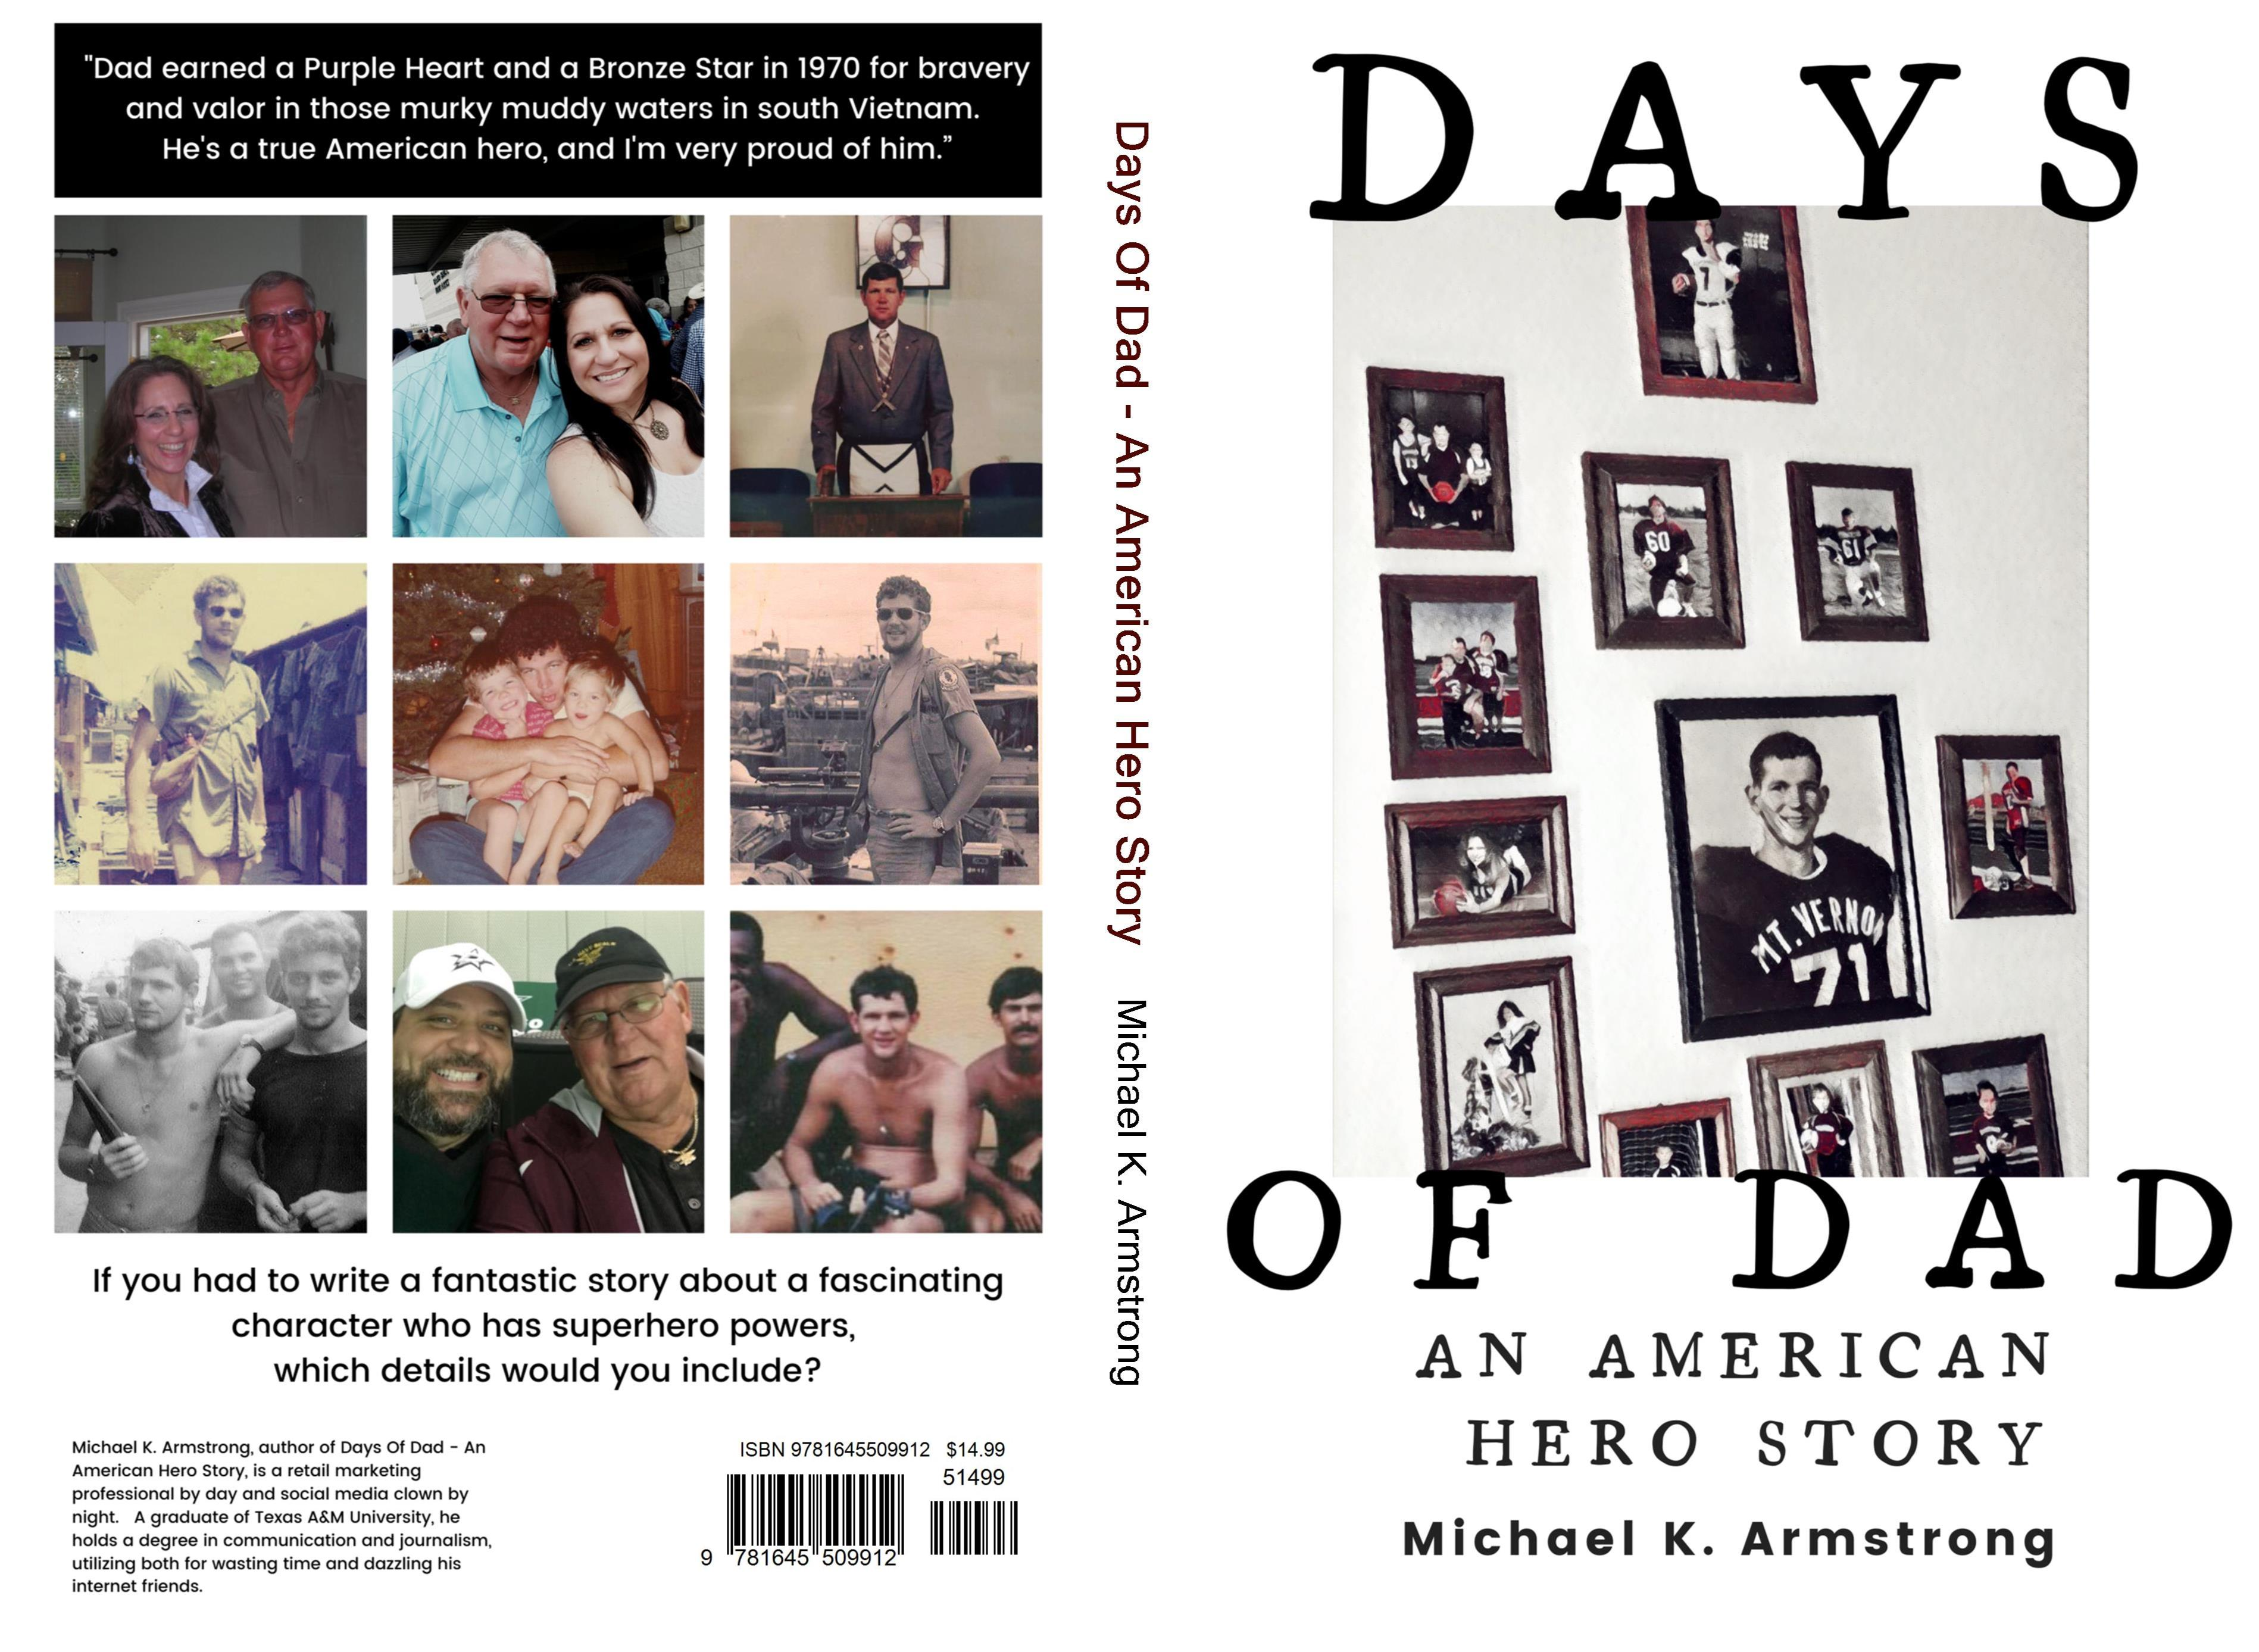 Days Of Dad - An American Hero Story cover image